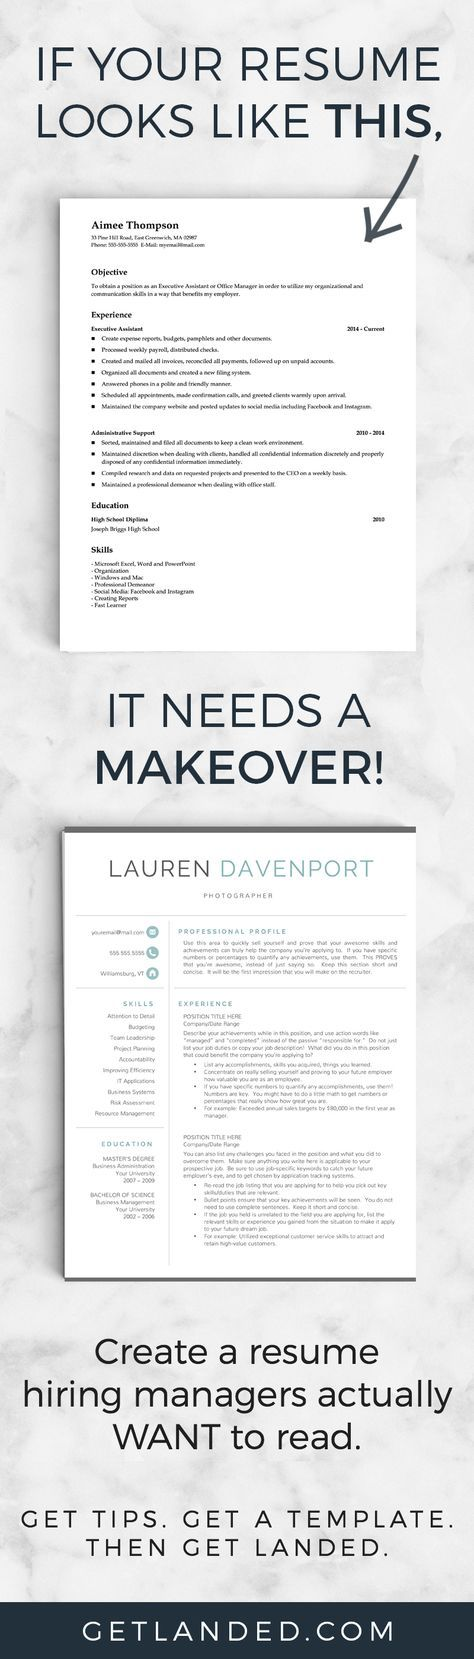 80 of candidates desperately need a resume makeover! Get a resume - a resume format